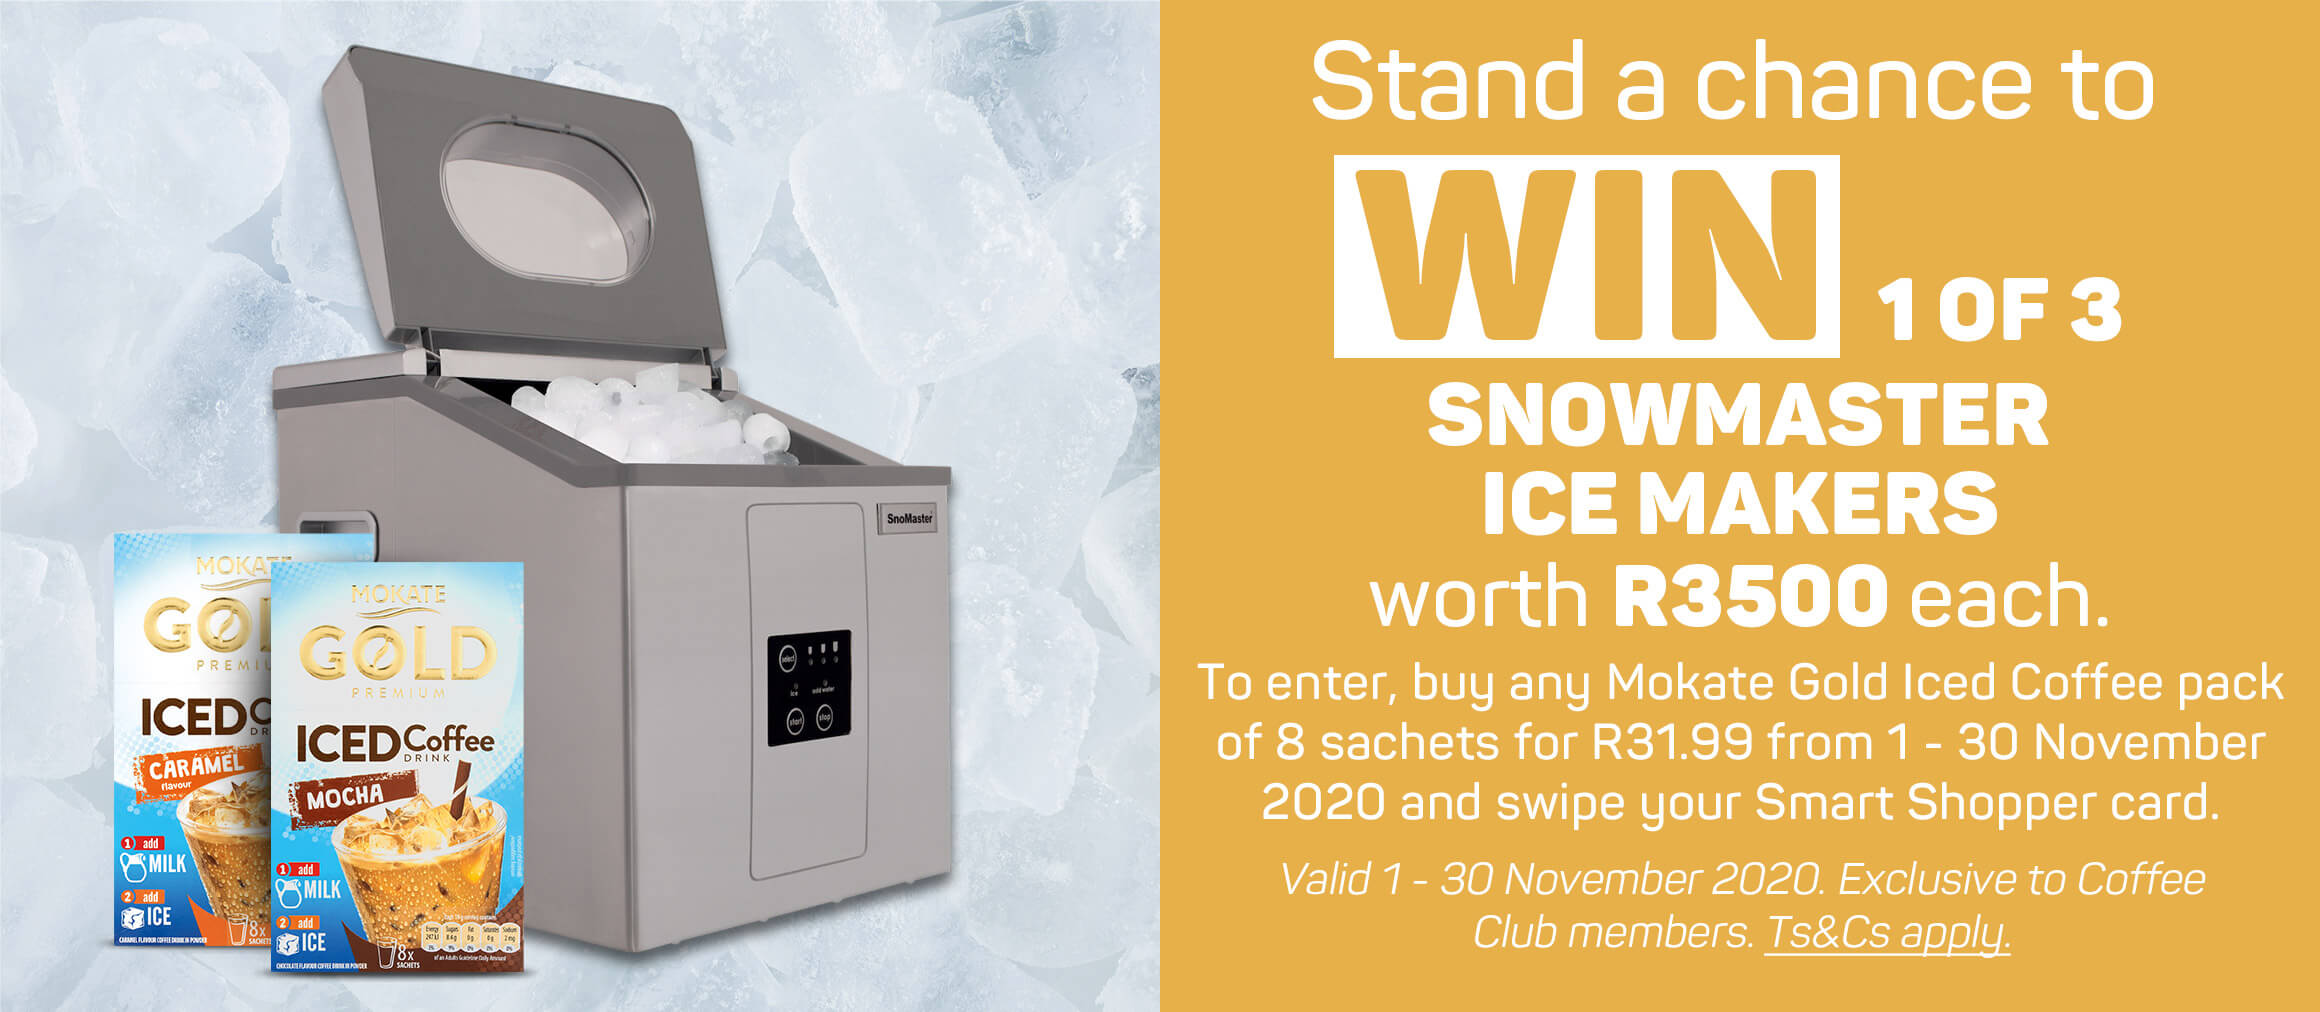 Stand a chance to win 1 of 3 snowmaster ice makers worth R3500 each